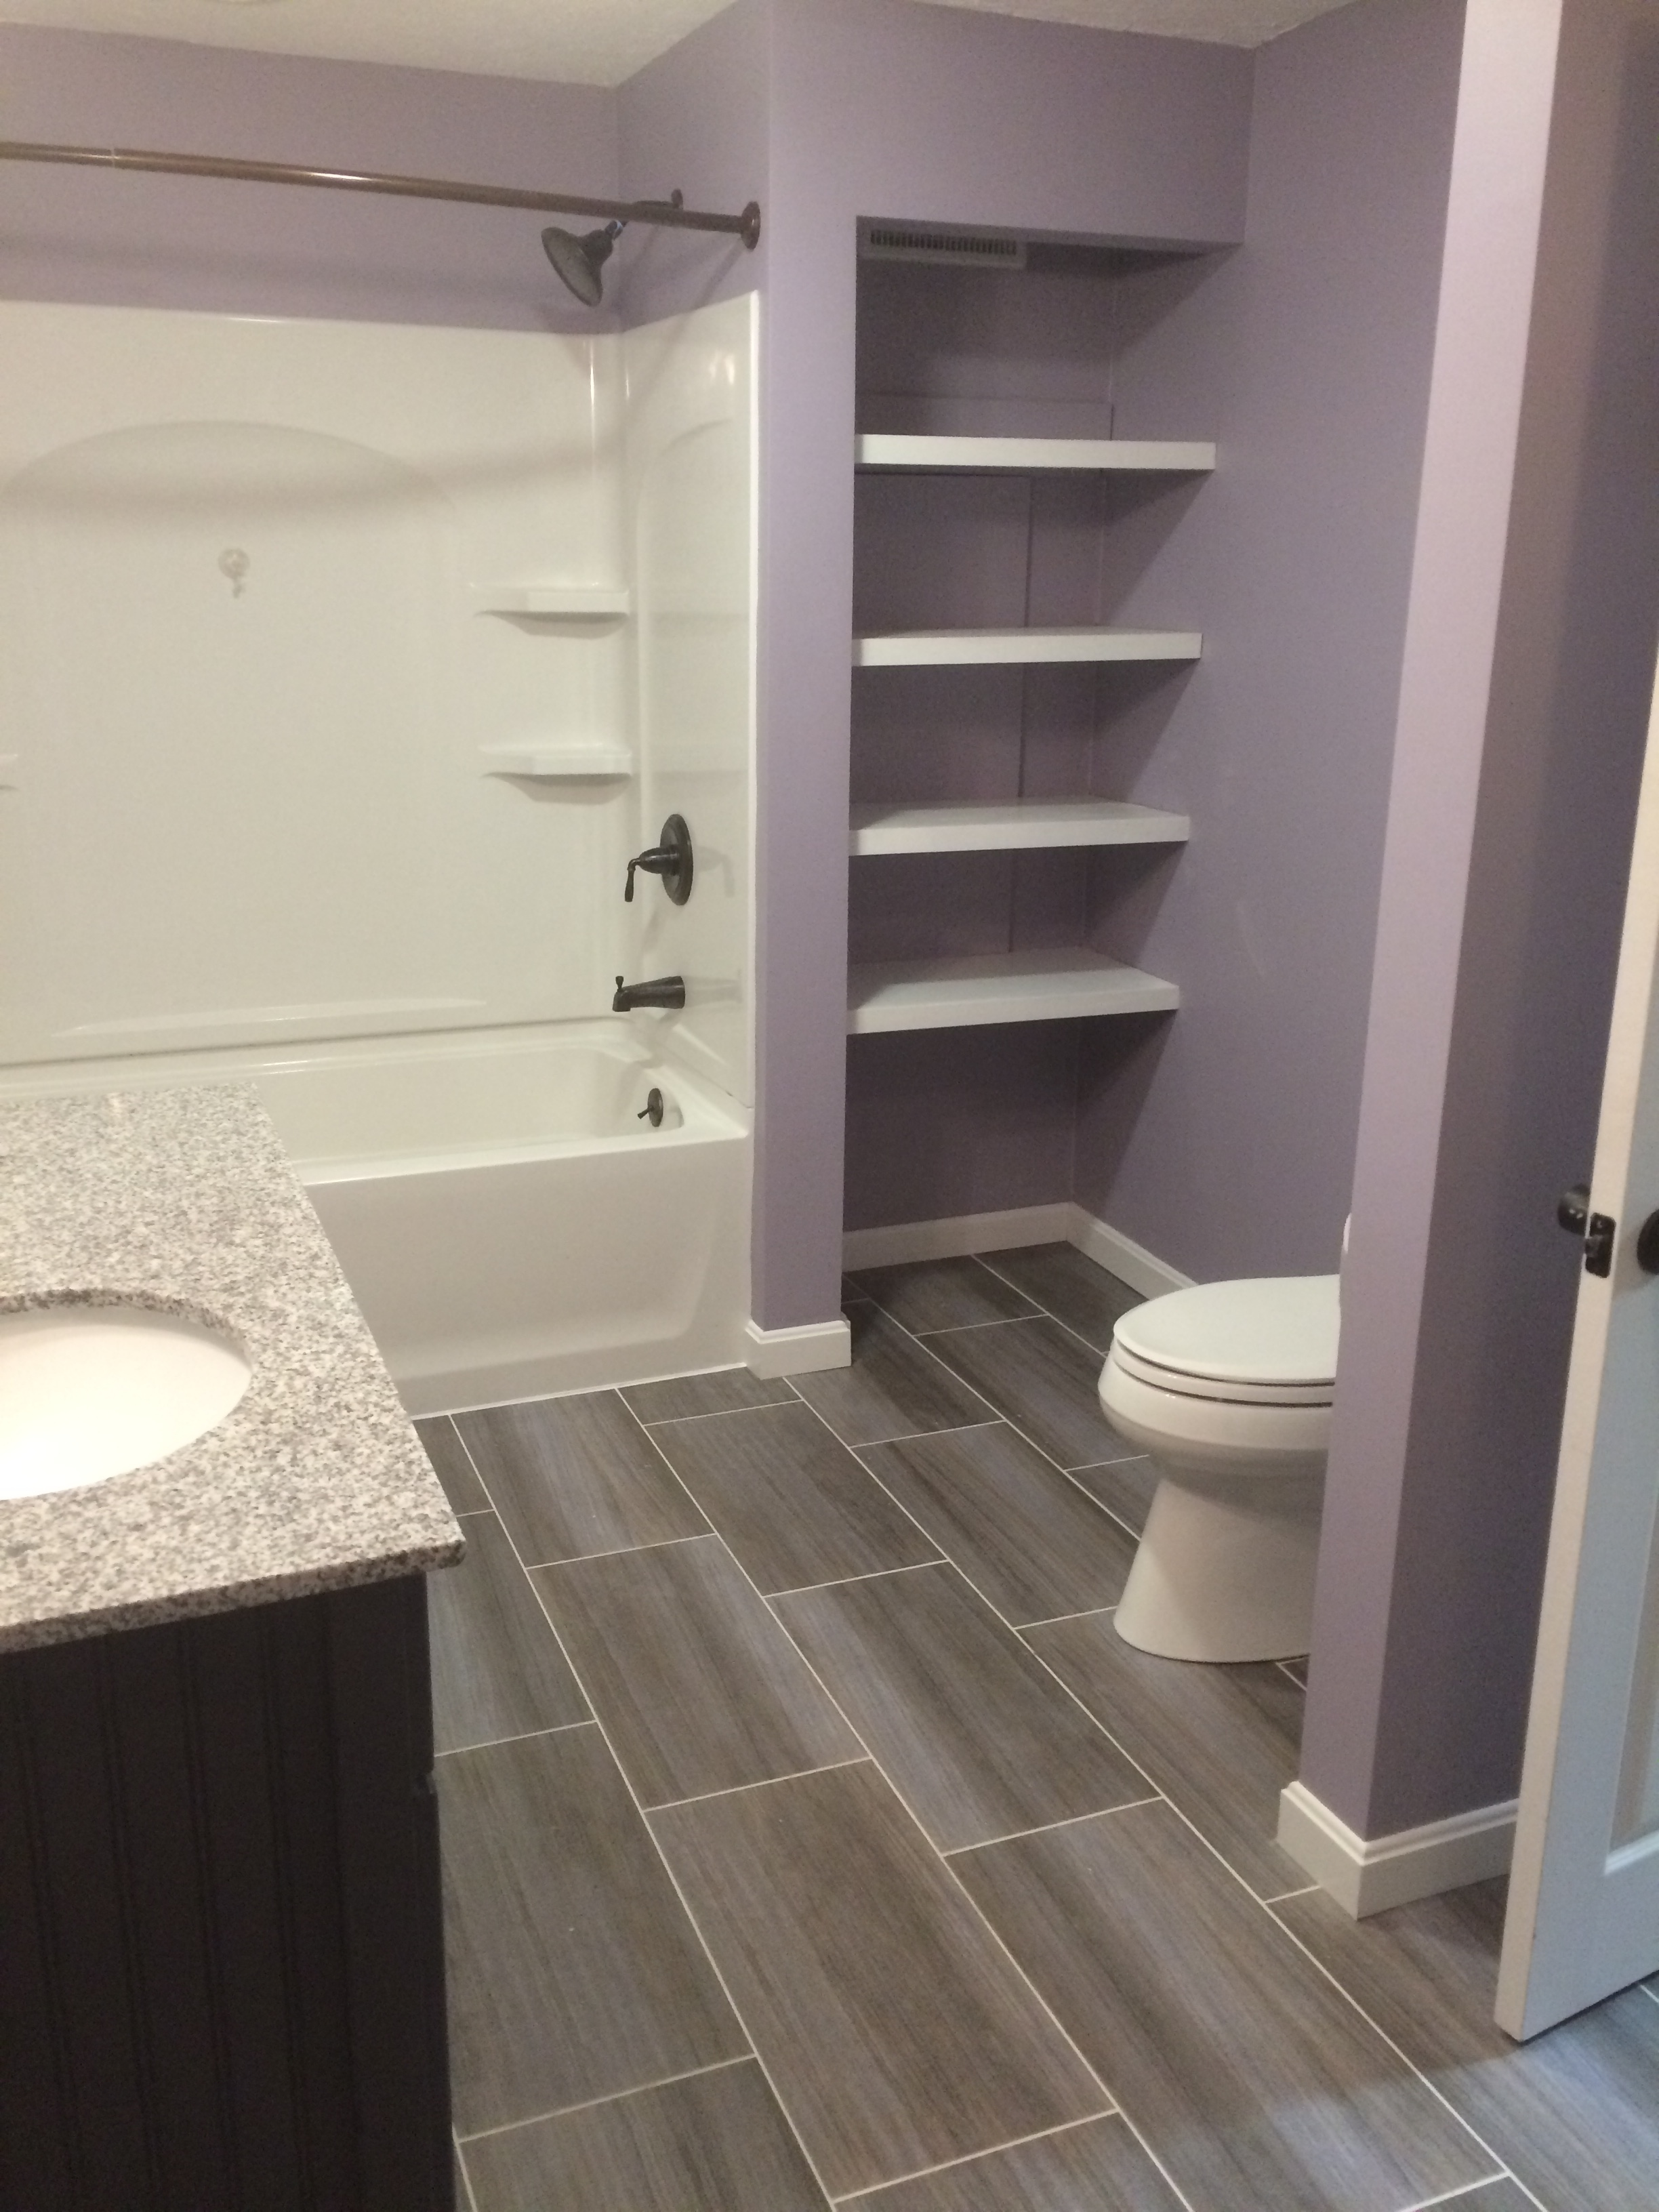 Basic Small Bathroom Remodel: Basic Bathroom Remodel